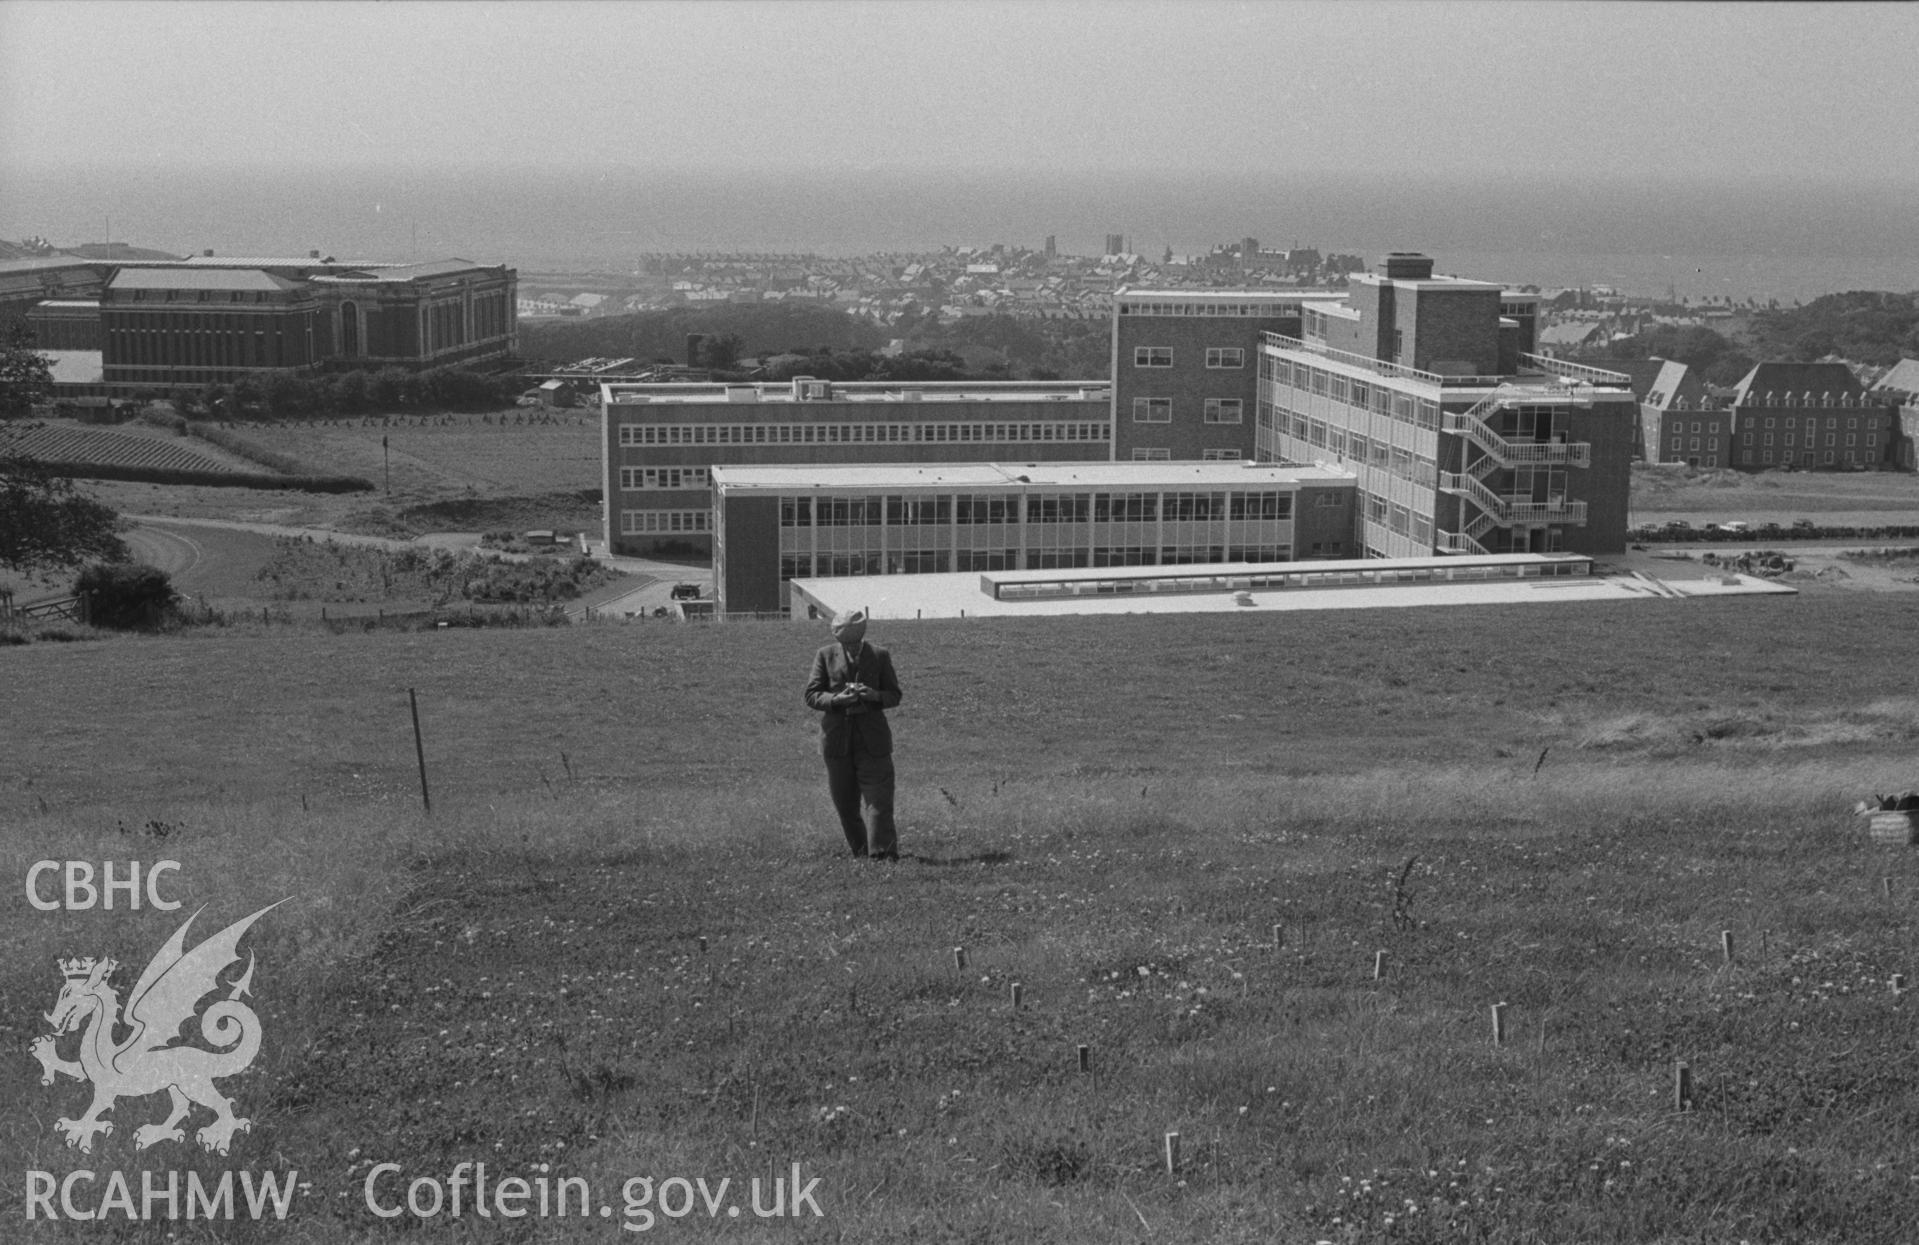 Black and White photograph showing University College Wales grass plots at Penglais, Aberystwyth, with National Library and the University's Physical Sciences building in the background. Photographed by Arthur Chater, August 1962. Grid reference: SN597818.